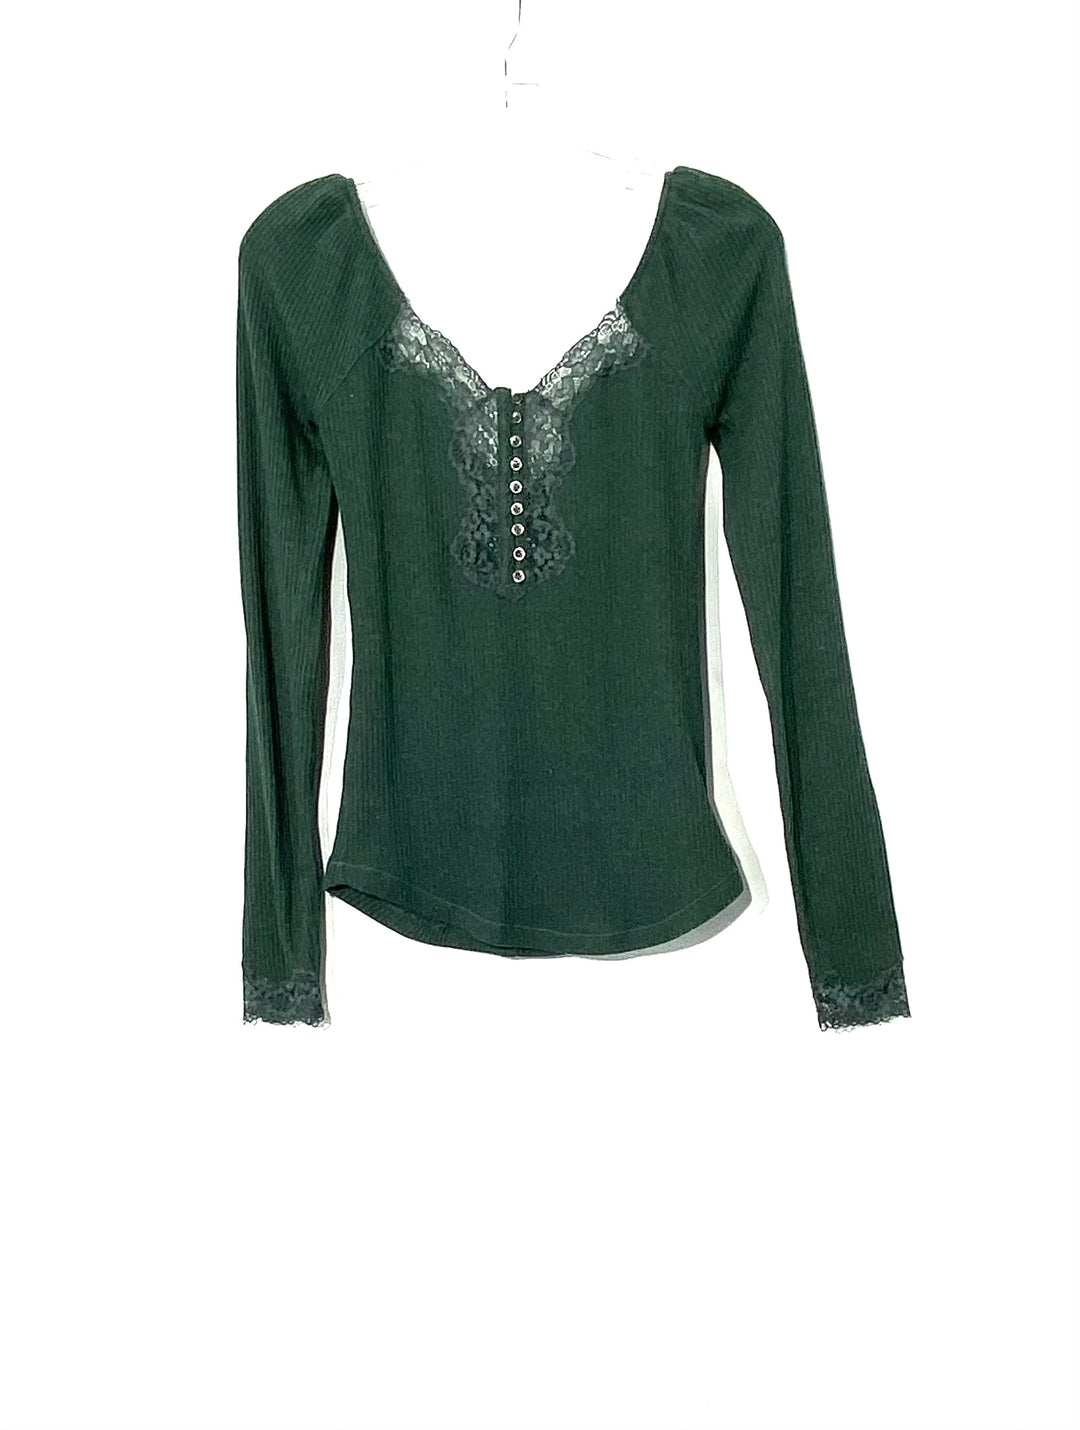 Primary Photo - BRAND: FREE PEOPLE <BR>STYLE: TOP LONG SLEEVE <BR>COLOR: DARK GREEN<BR>SIZE: S <BR>SKU: 262-26275-71506